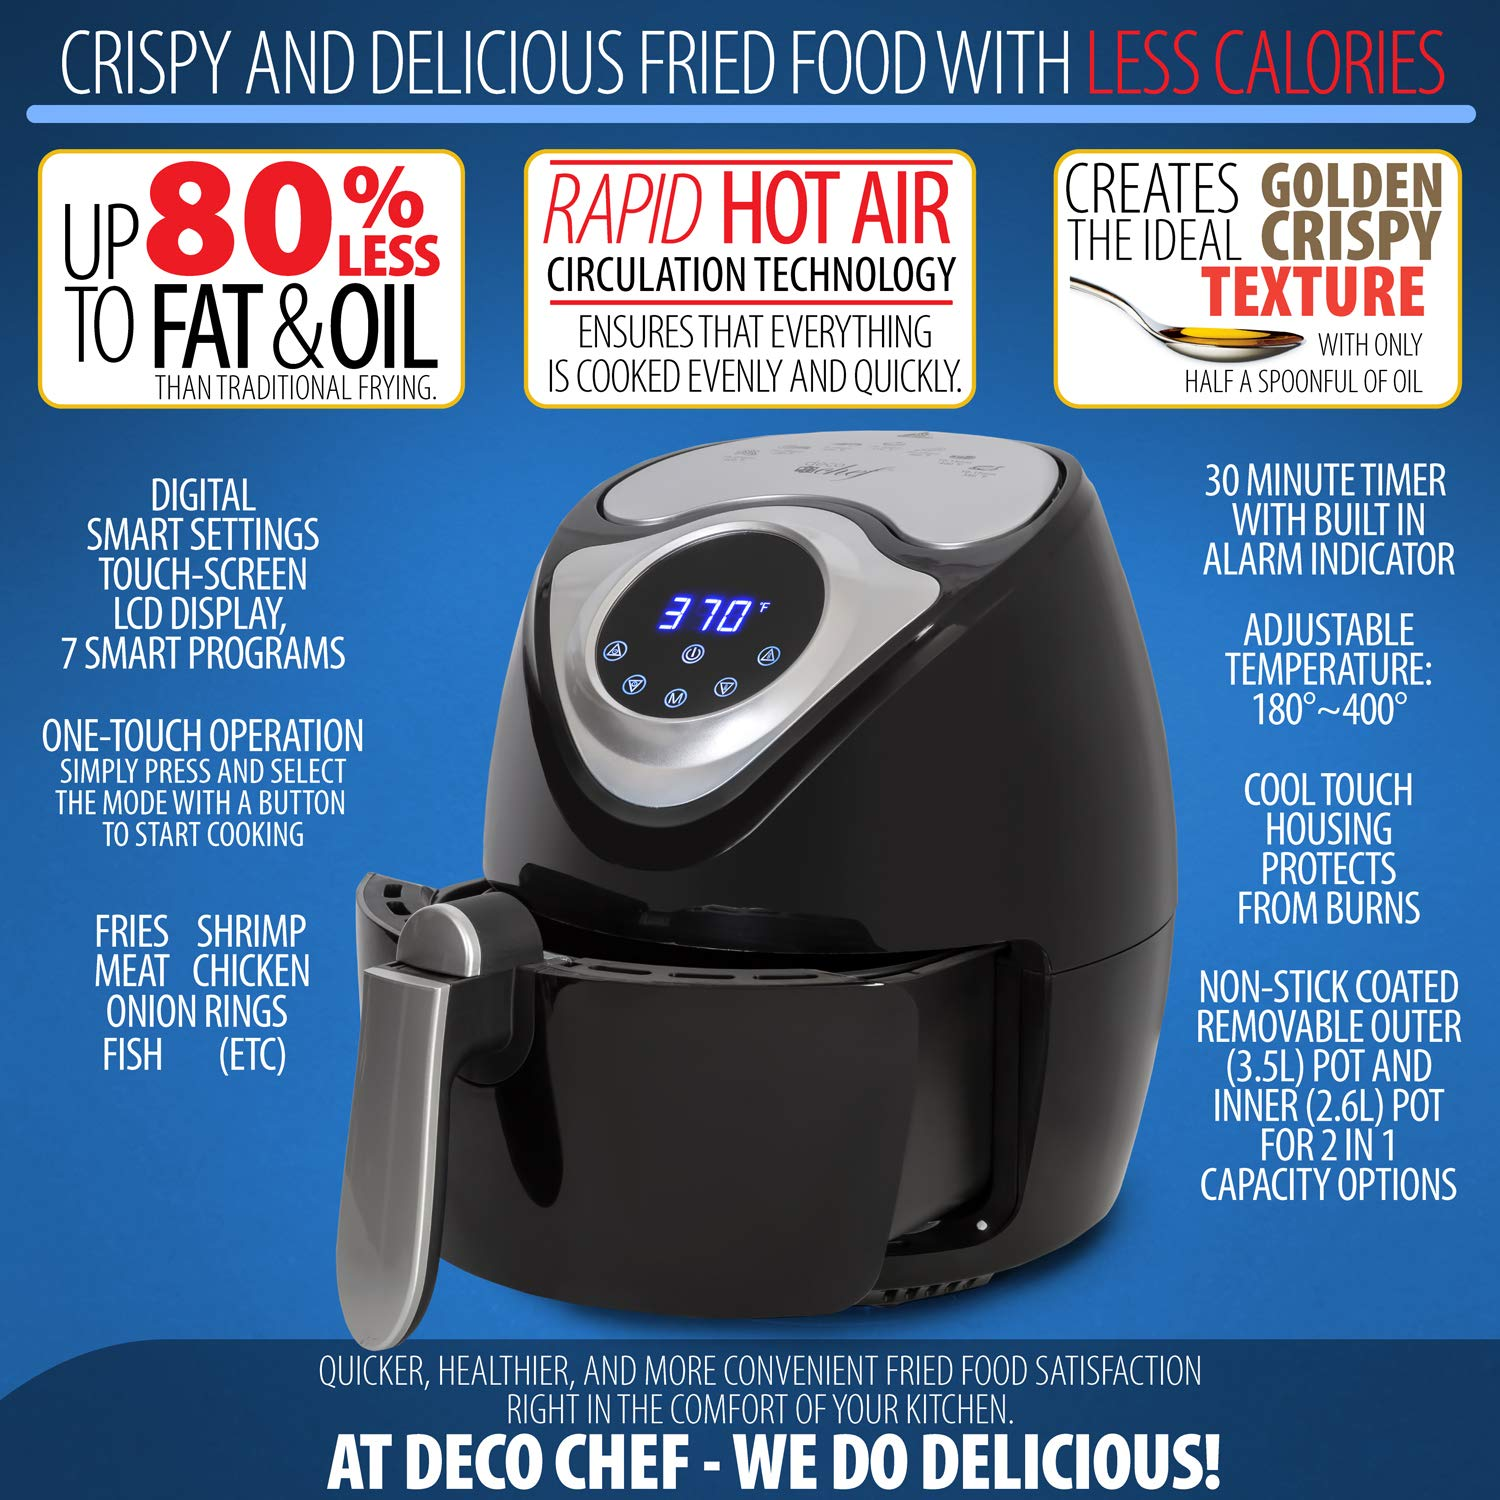 Deco Chef XL 3.7 QT Digital Air Fryer with 7 Smart Programs LCD Touch Screen Oil-Less Non-Stick Coated Countertop Healthy Kitchen Safe Frying Station